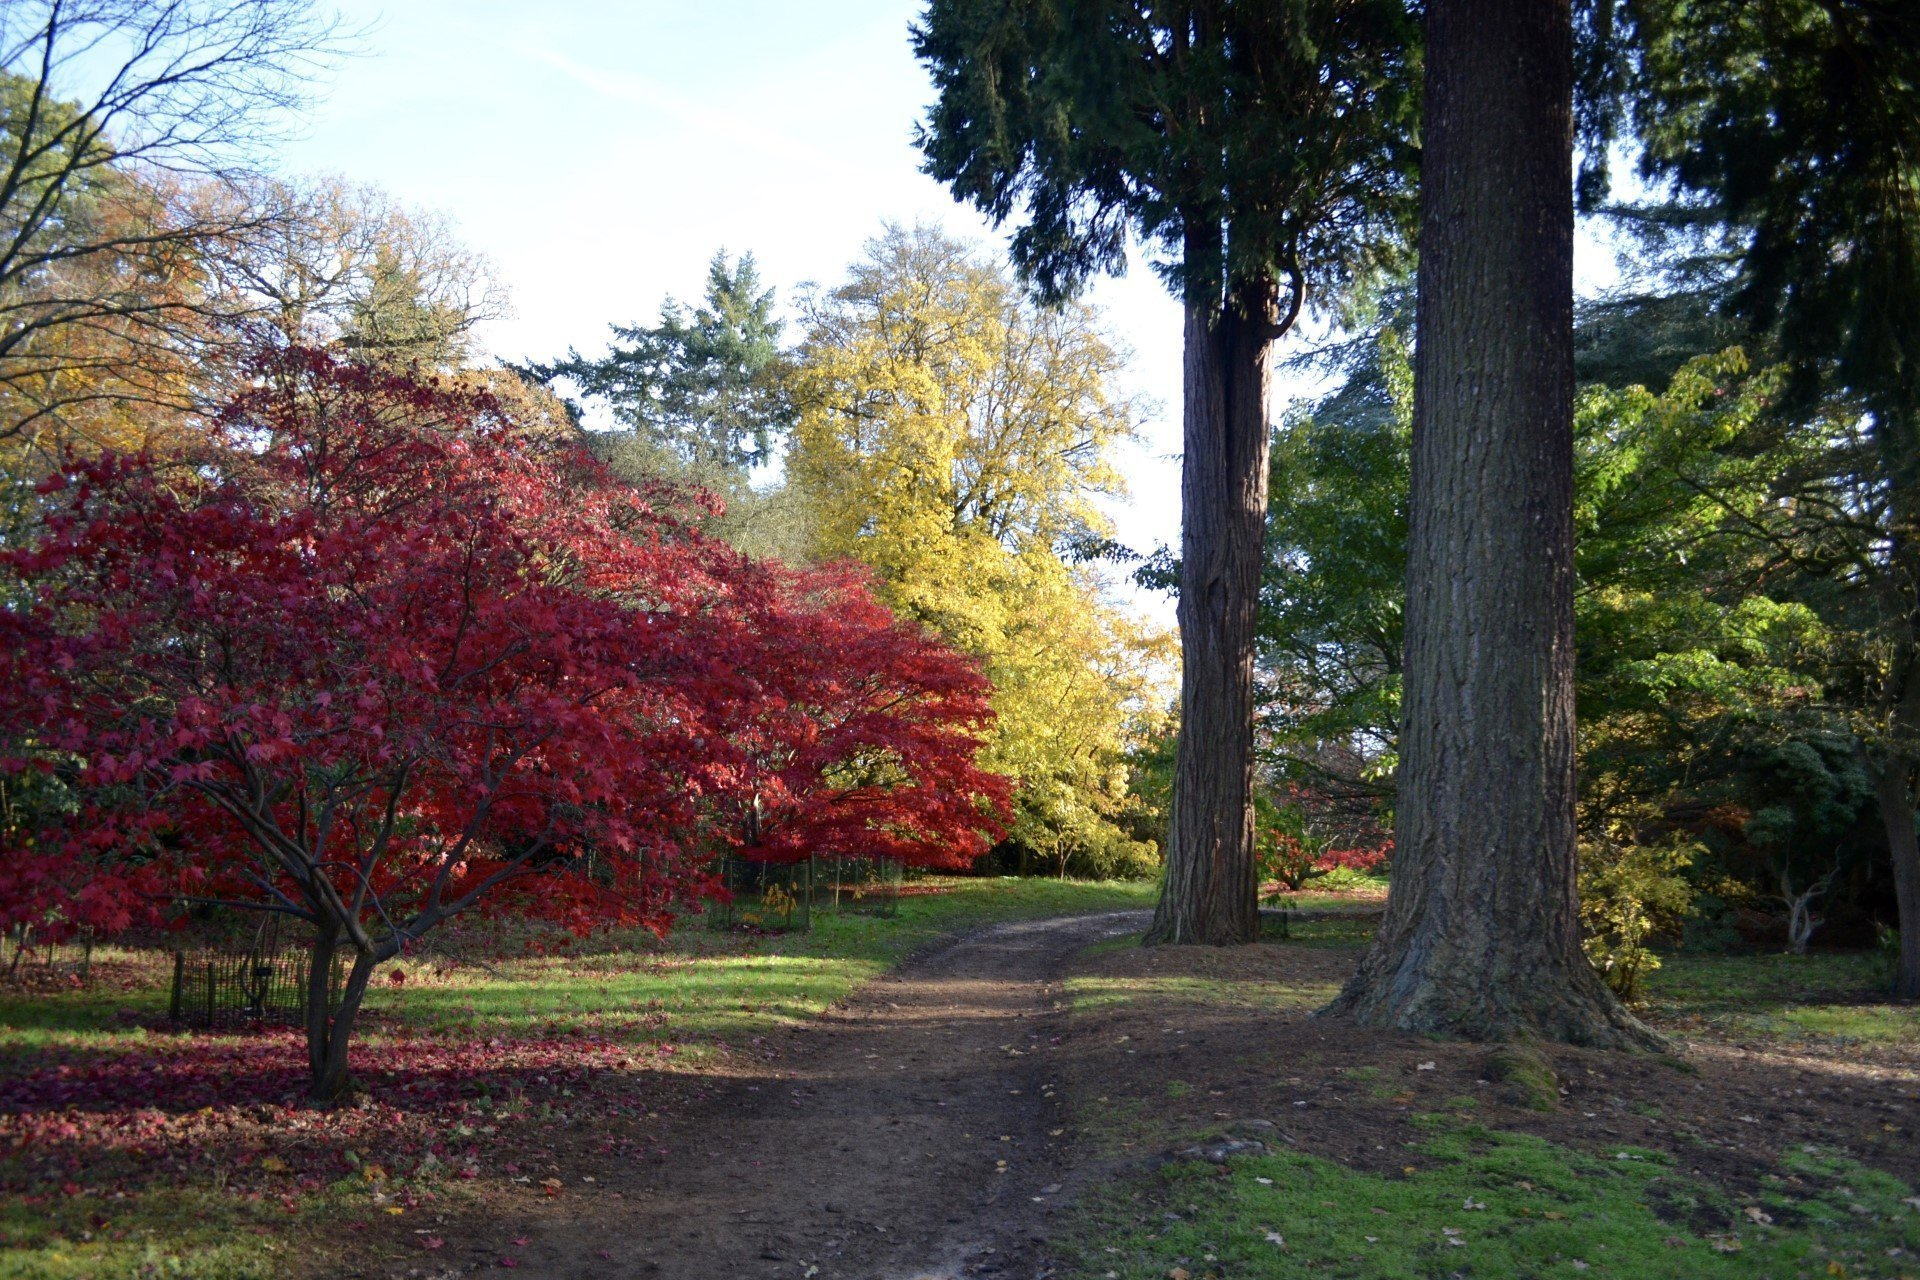 Harcourt Arboretum - The Acer Glade and Coppice